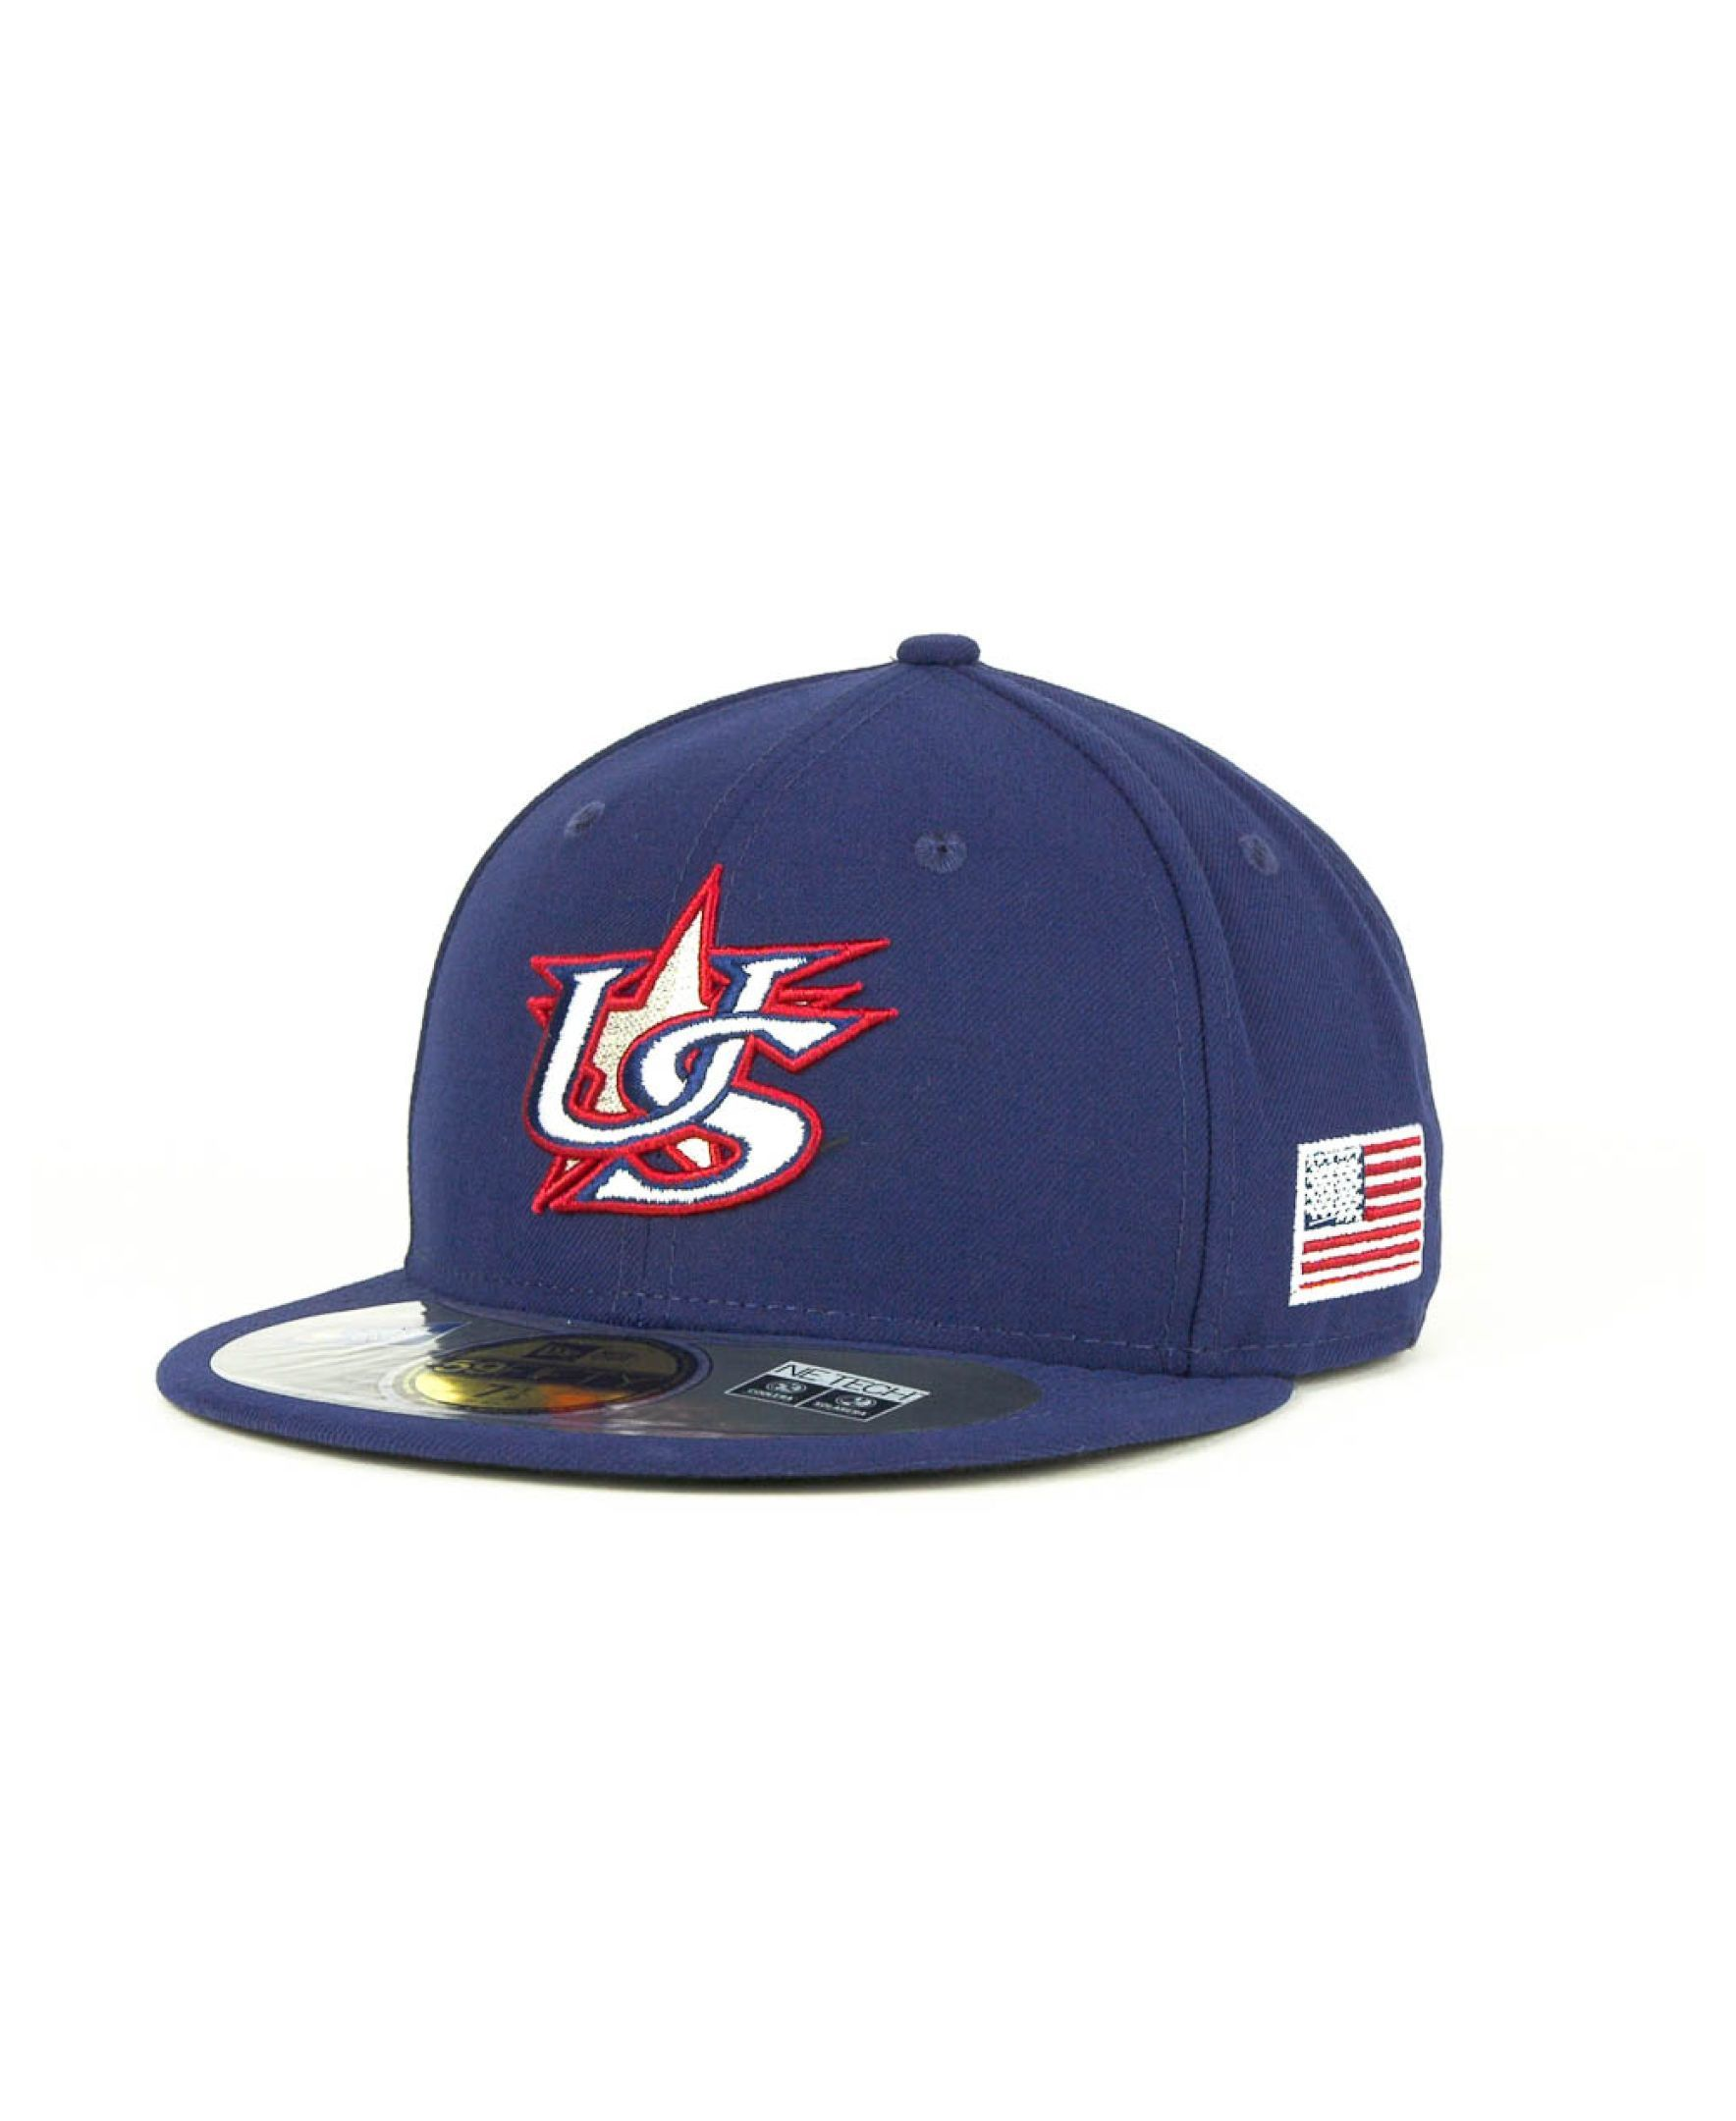 e852b53ce9f New Era Usa 2013 World Baseball Classic 59FIFTY Cap